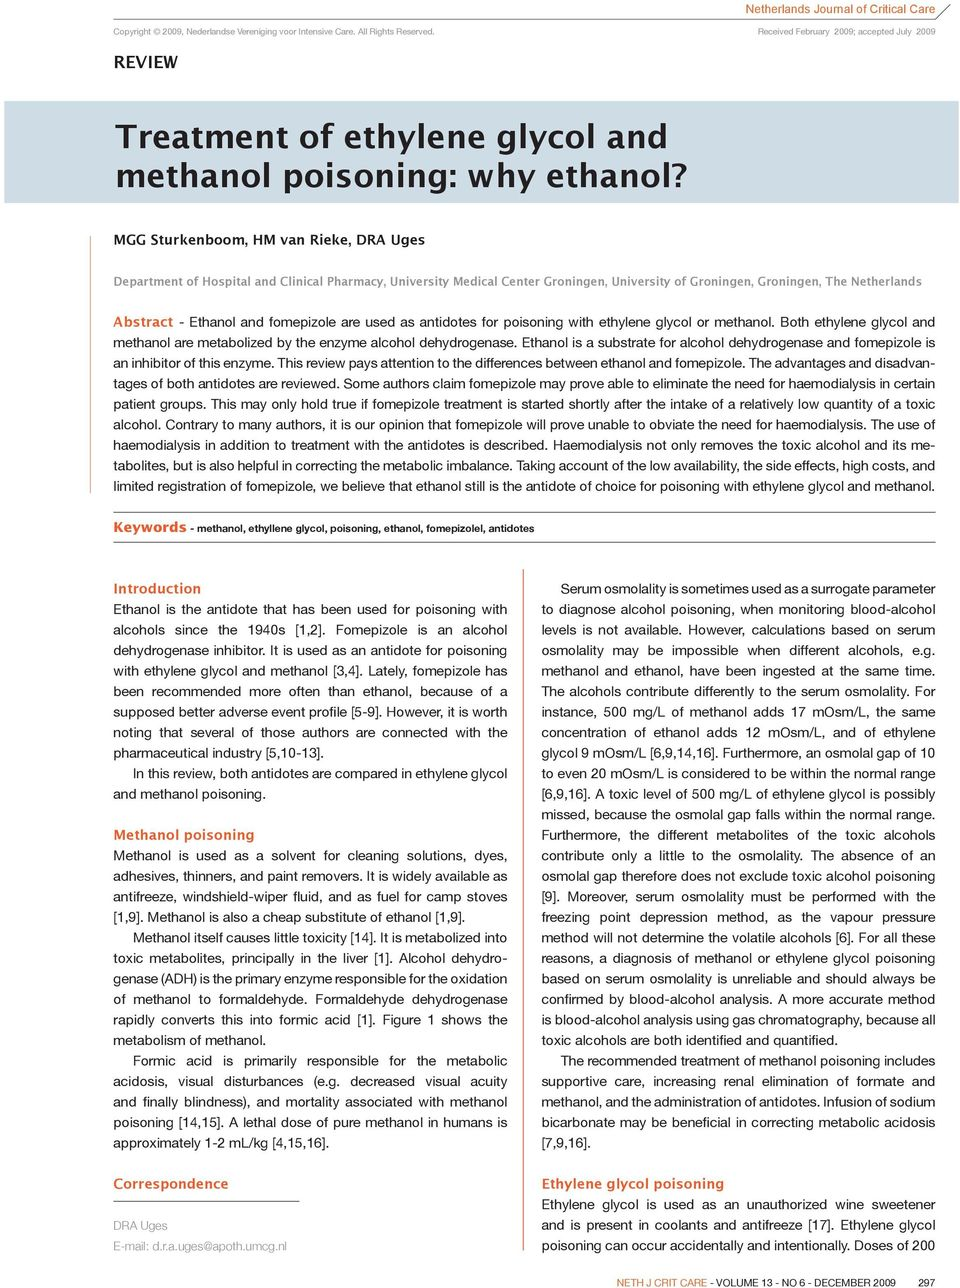 MGG Sturkenboom, HM van Rieke, DRA Uges Department of Hospital and Clinical Pharmacy, University Medical Center Groningen, University of Groningen, Groningen, The Netherlands Abstract - Ethanol and